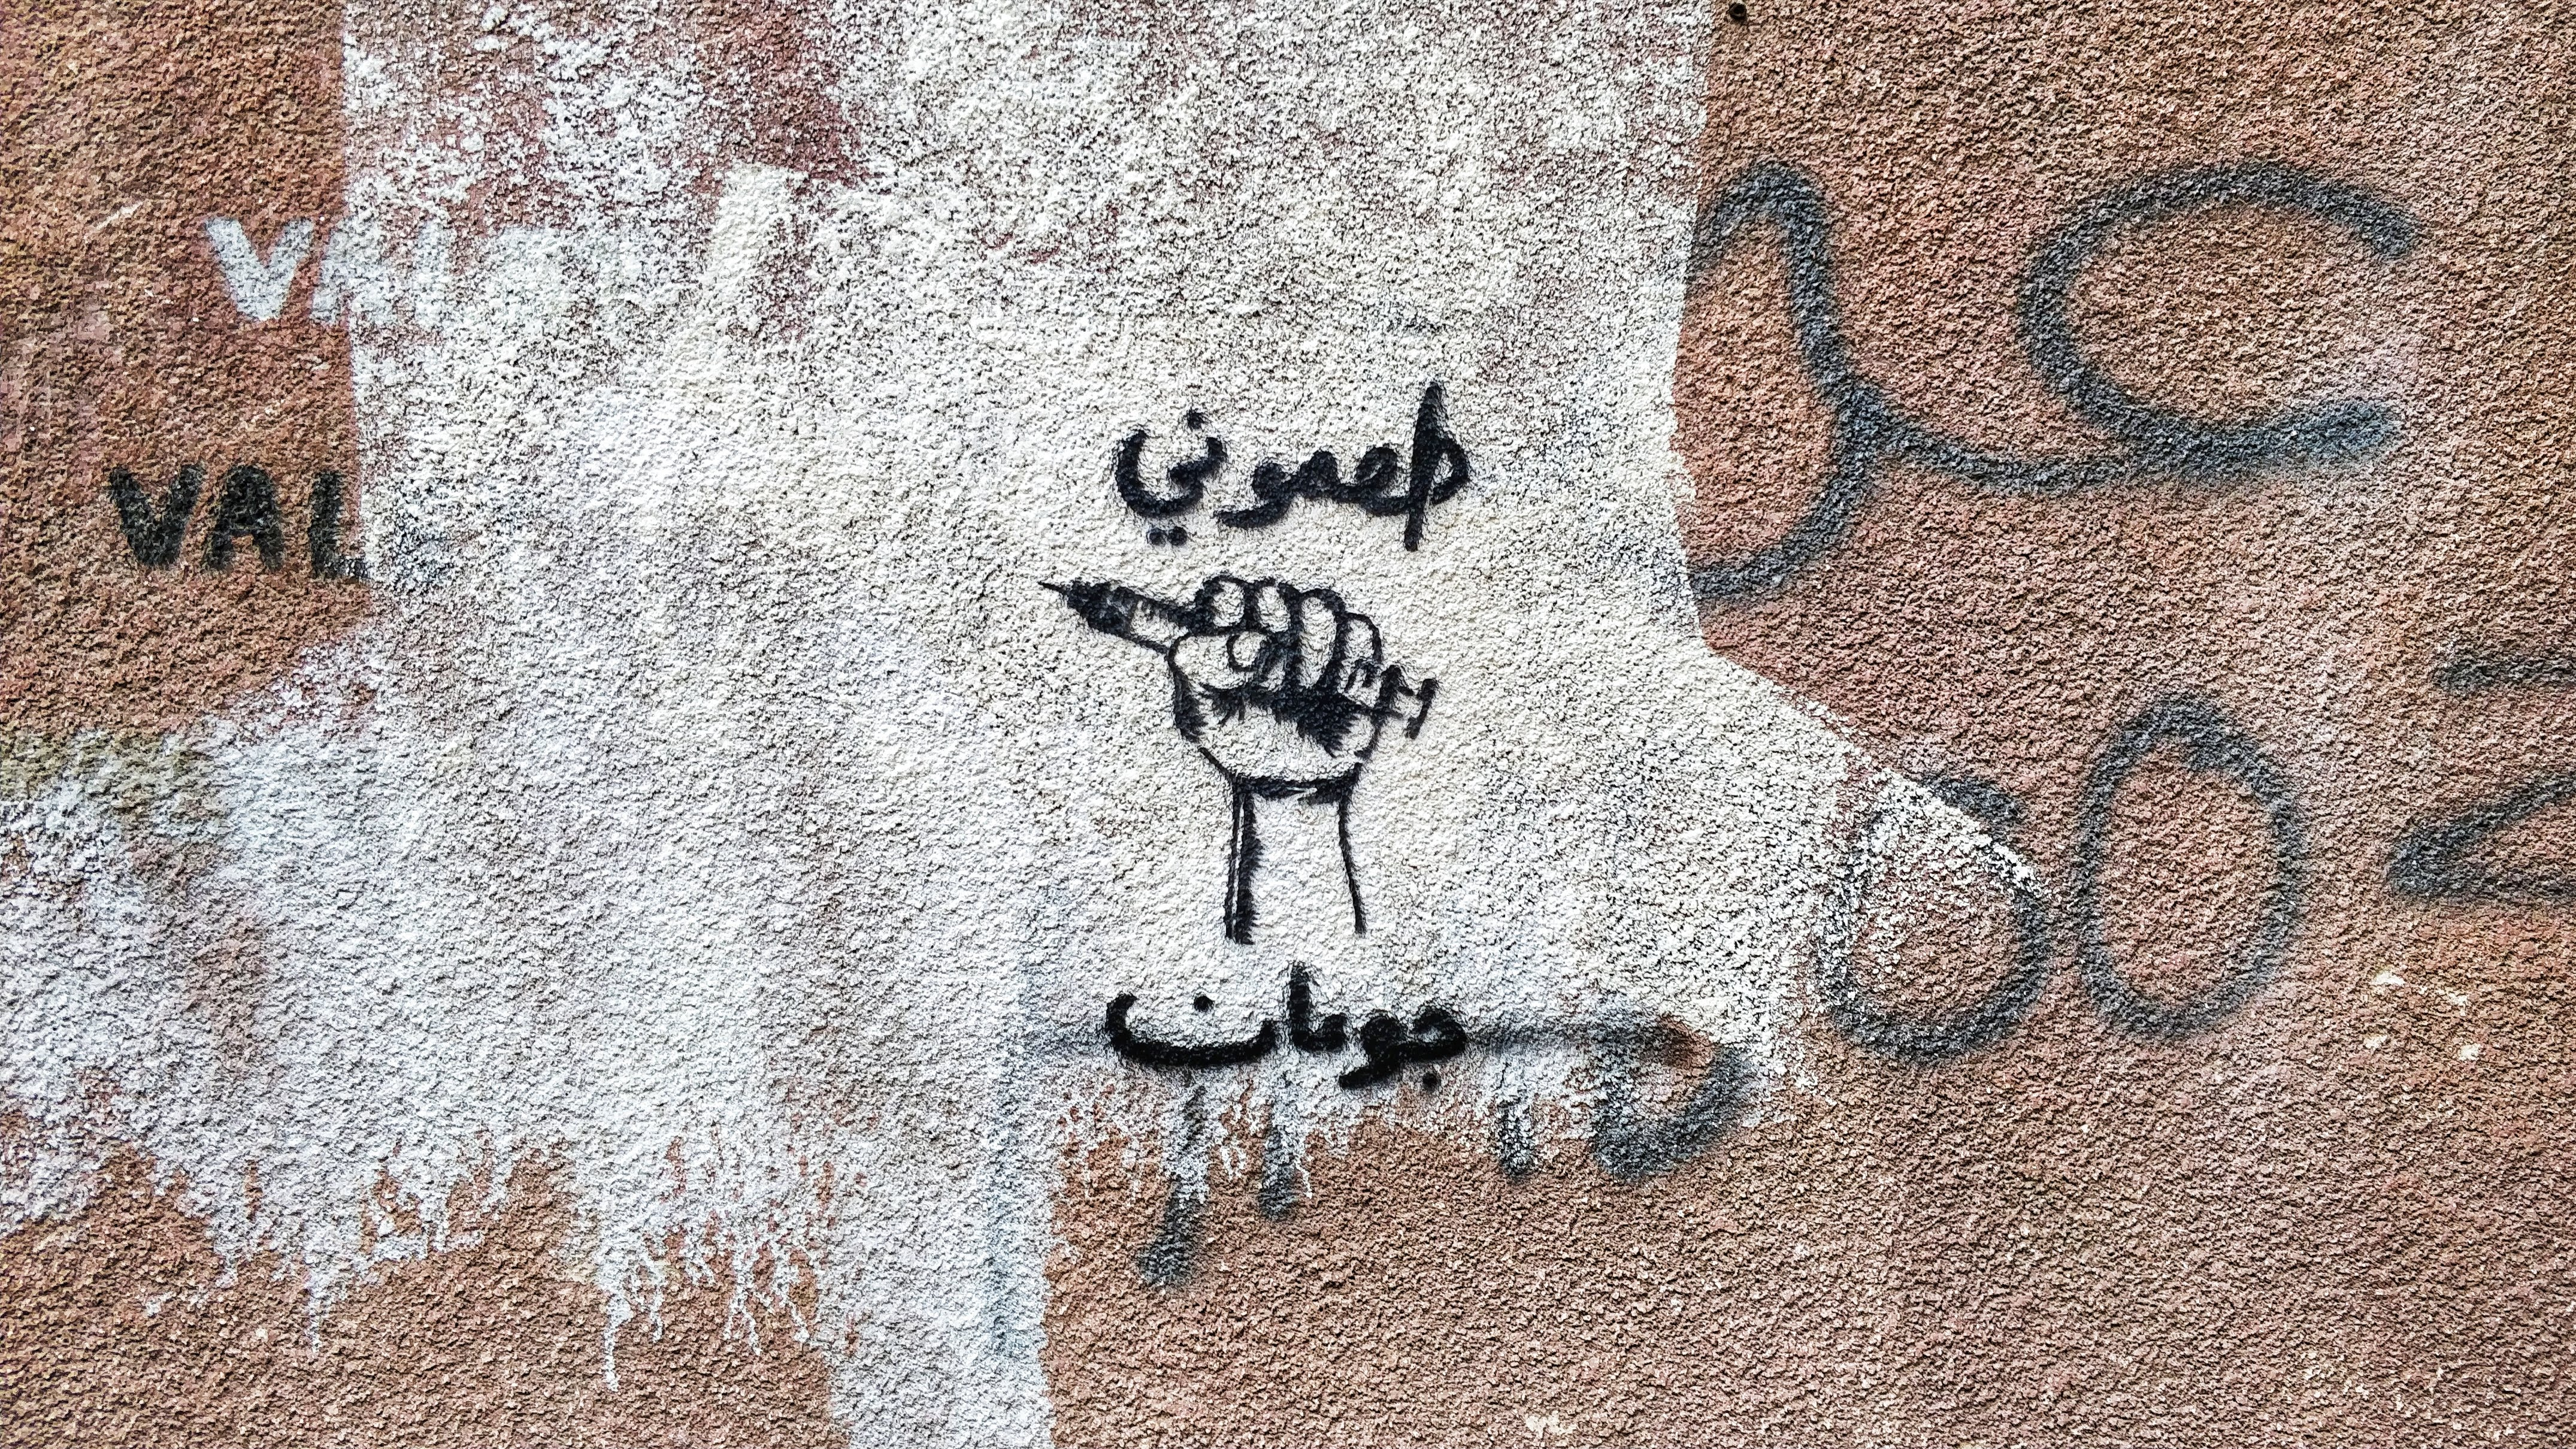 Mural in Amman, Jordan saying